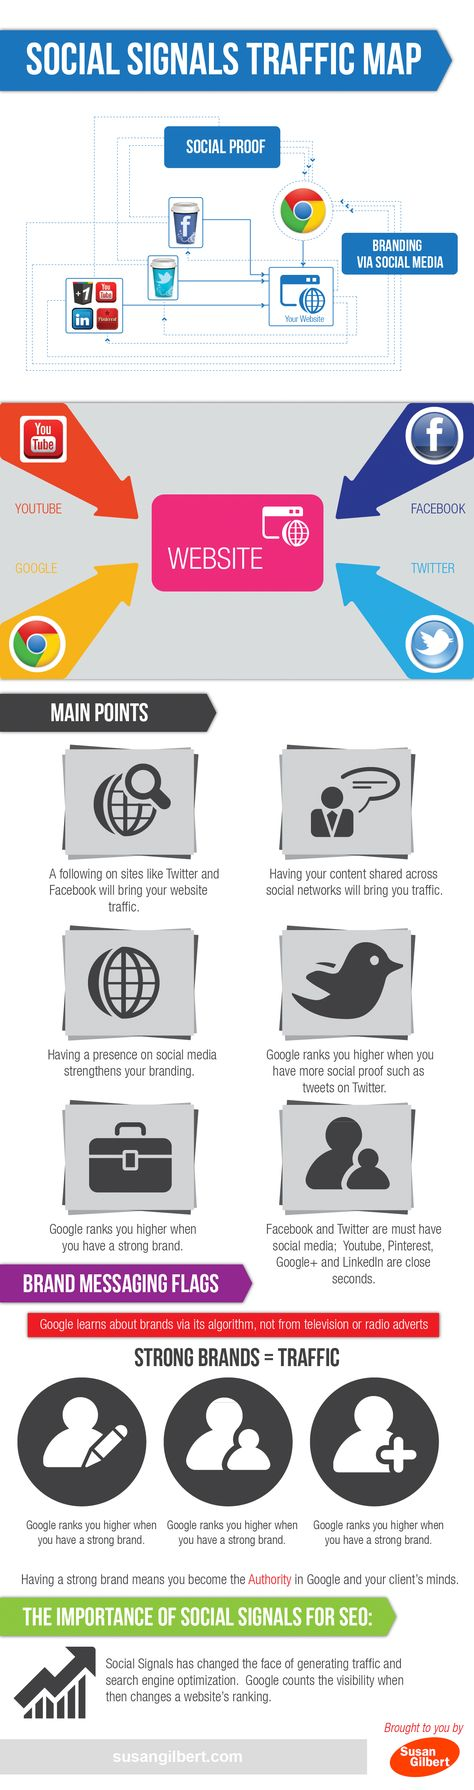 Why Social Sharing Matters: Social Signals Traffic Map [Infographic]